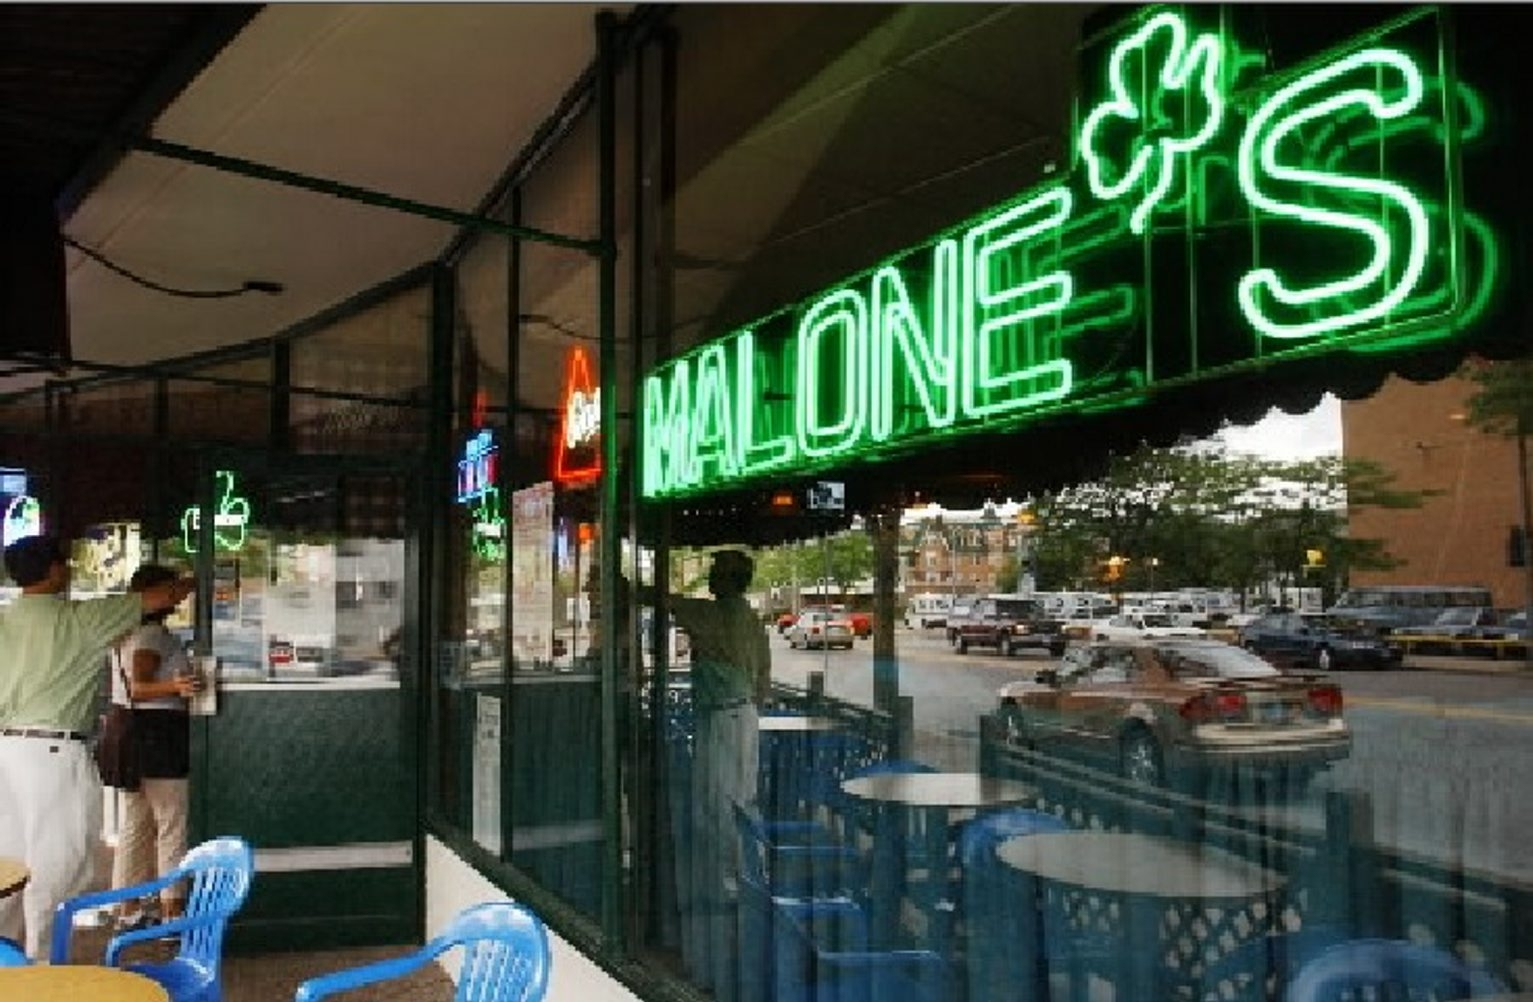 Police say victim left Malone's tavern in Kenmore shortly before midnight and was killed between 2 and 11 a.m.